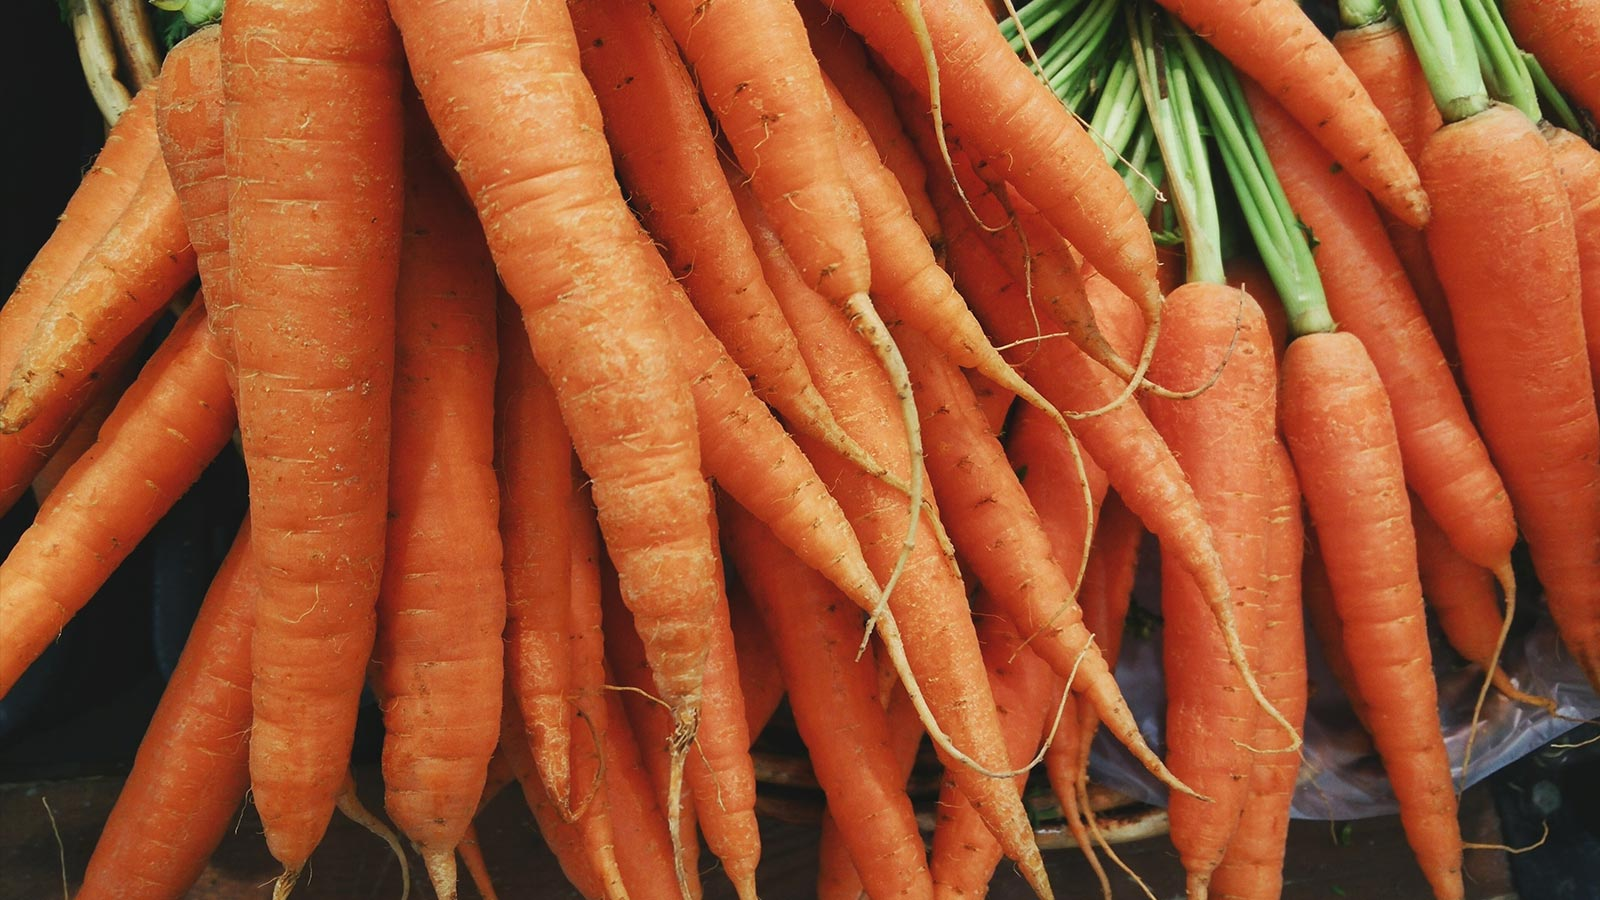 Keep the K in carrots: uncovering potassium variations | Pix4D